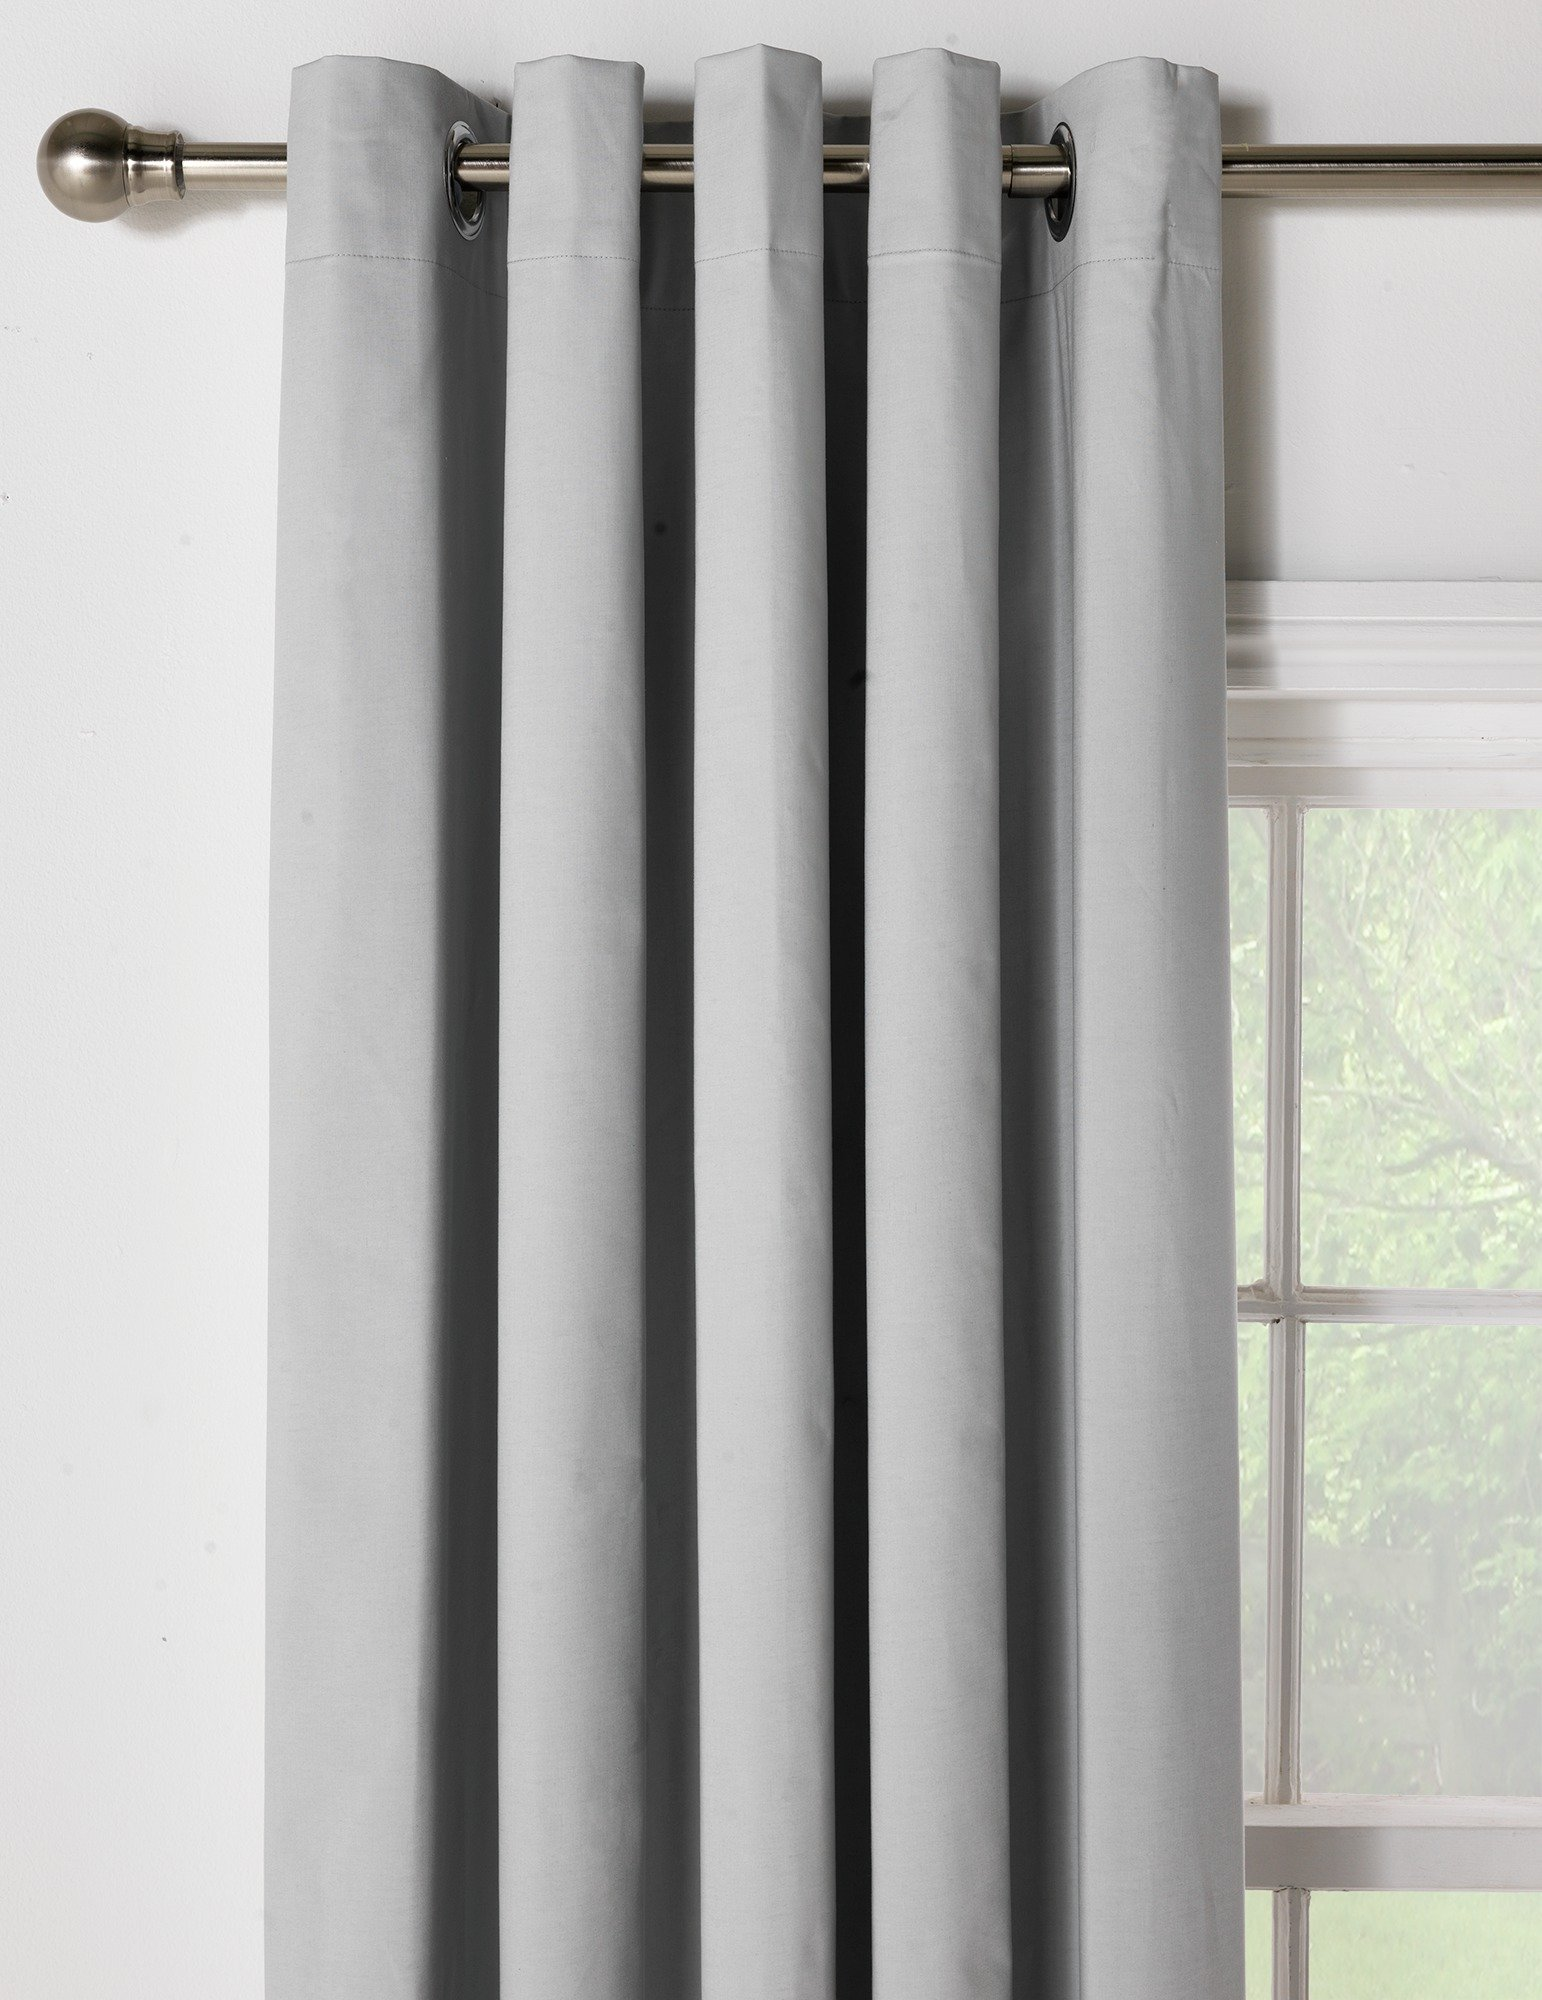 Thermal Curtains Thermal Lined Curtains Thick Curtains Heavy